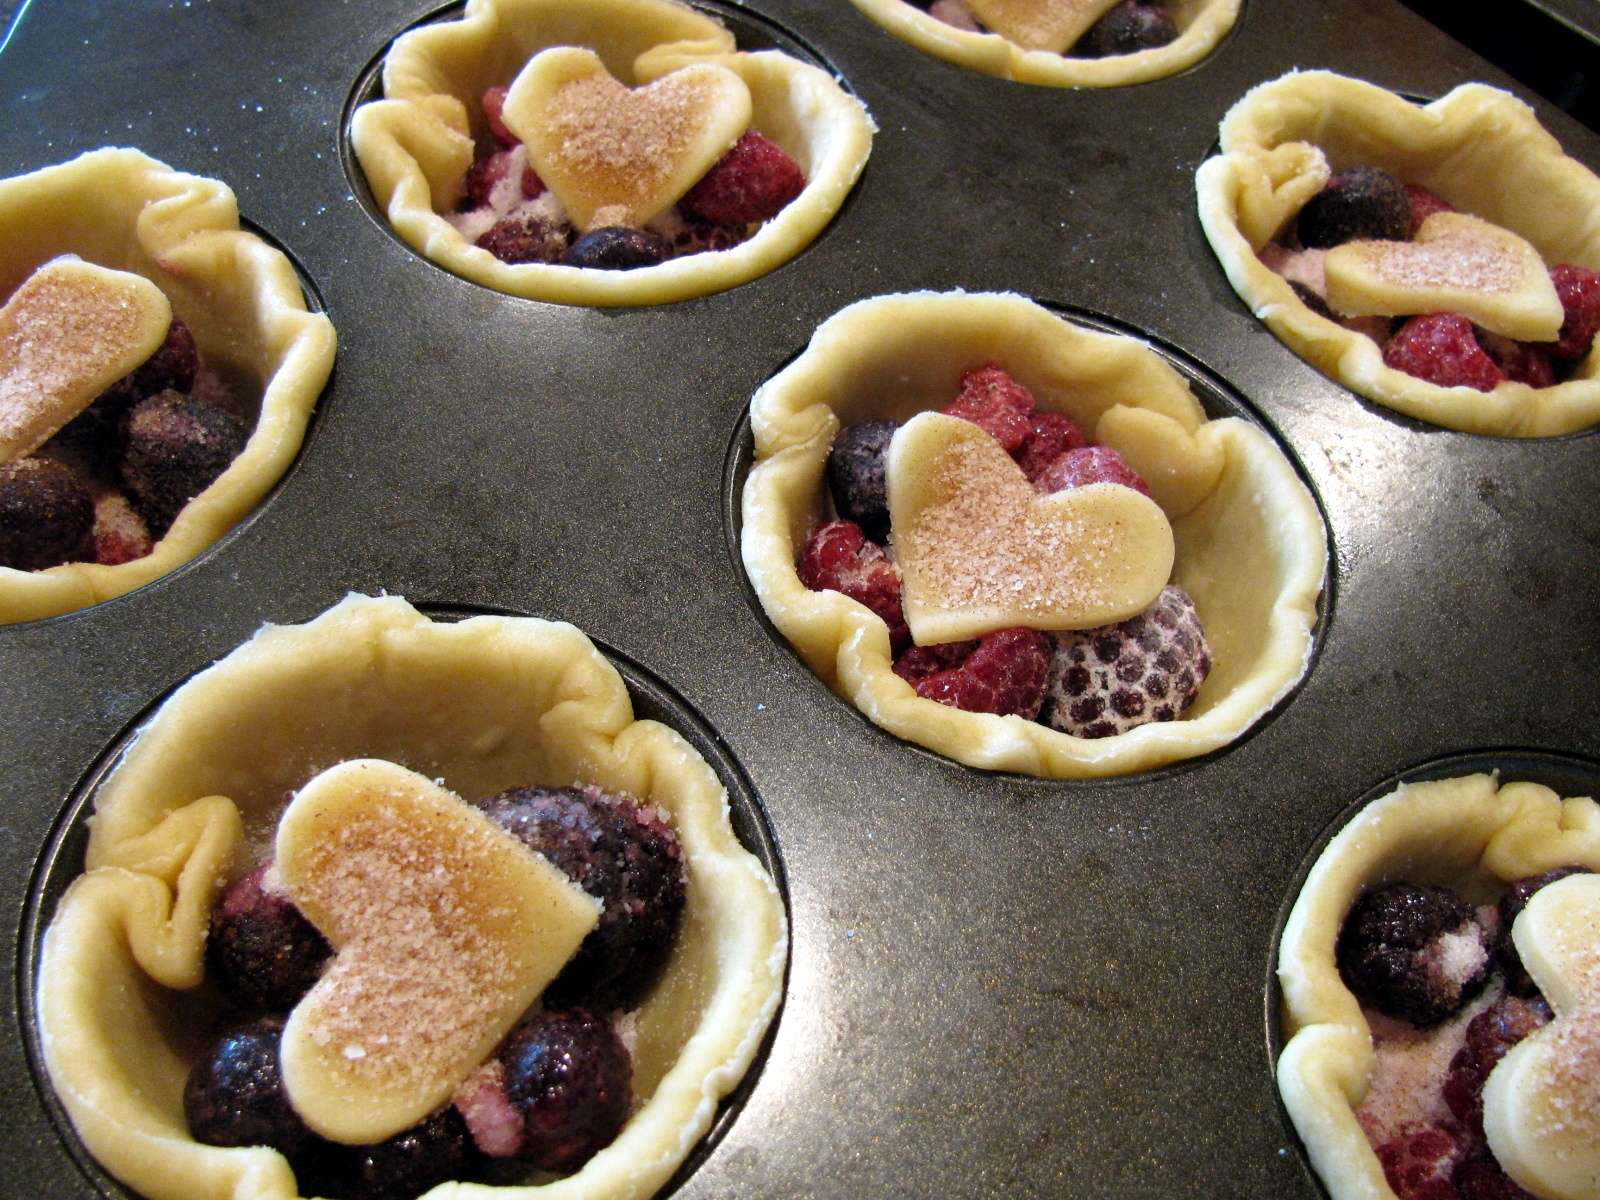 ... berry sorbet mixed berry galette mixed berry napoleons mixed berry pie